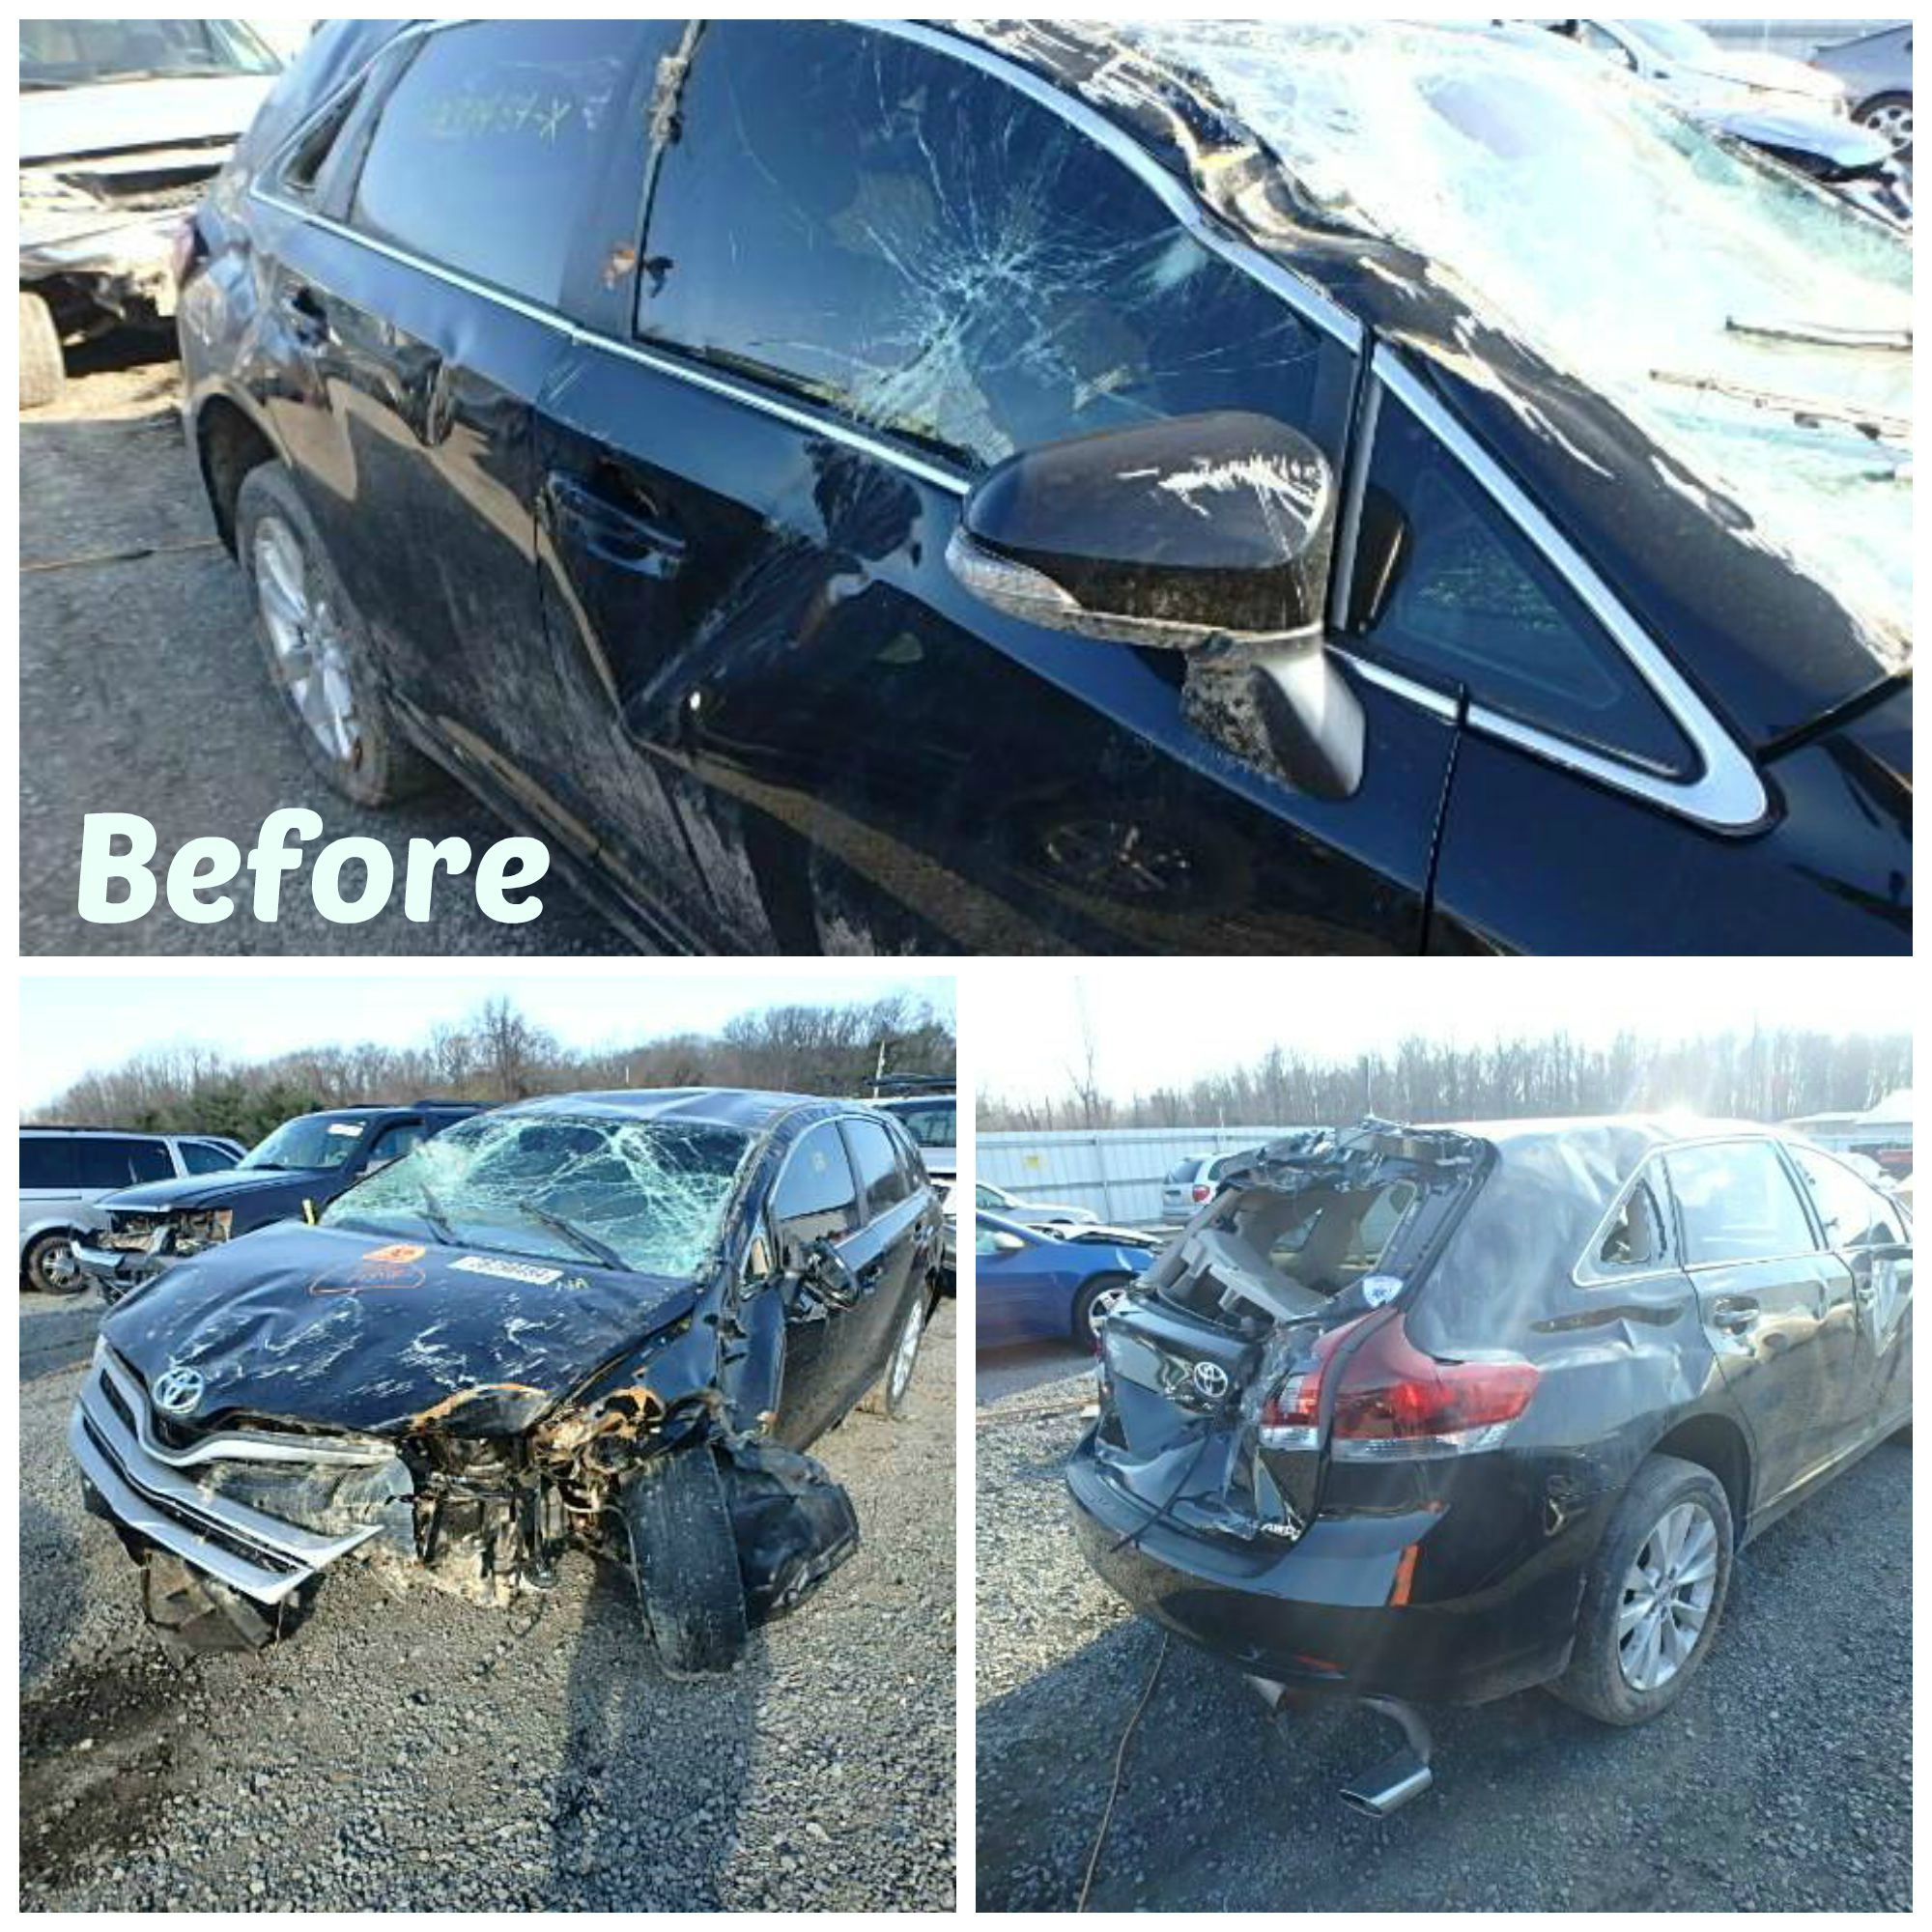 Before and After repairs or how our clients rebuild their cars